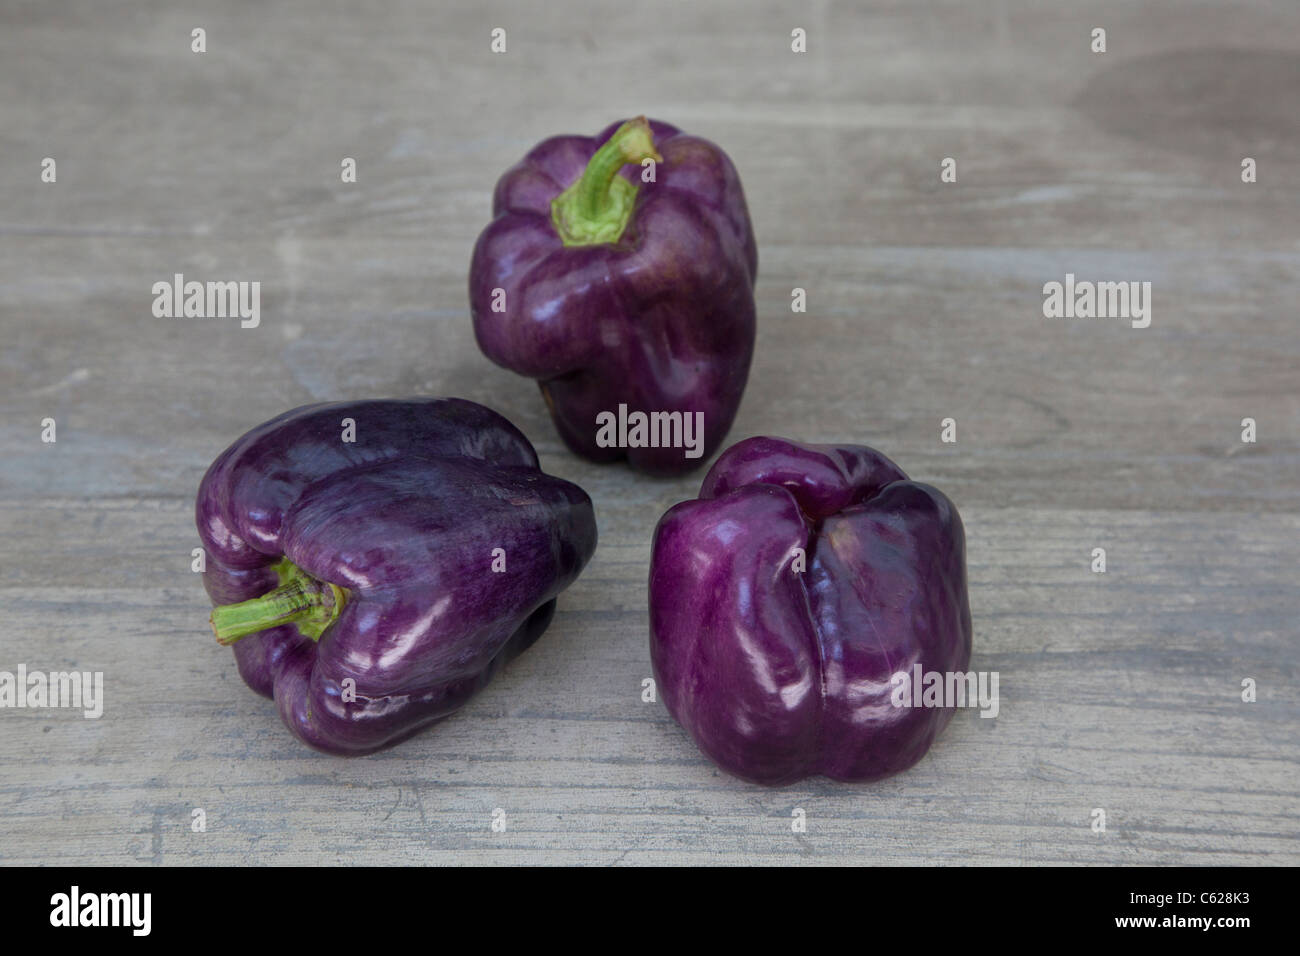 purple sweet peppers - Stock Image